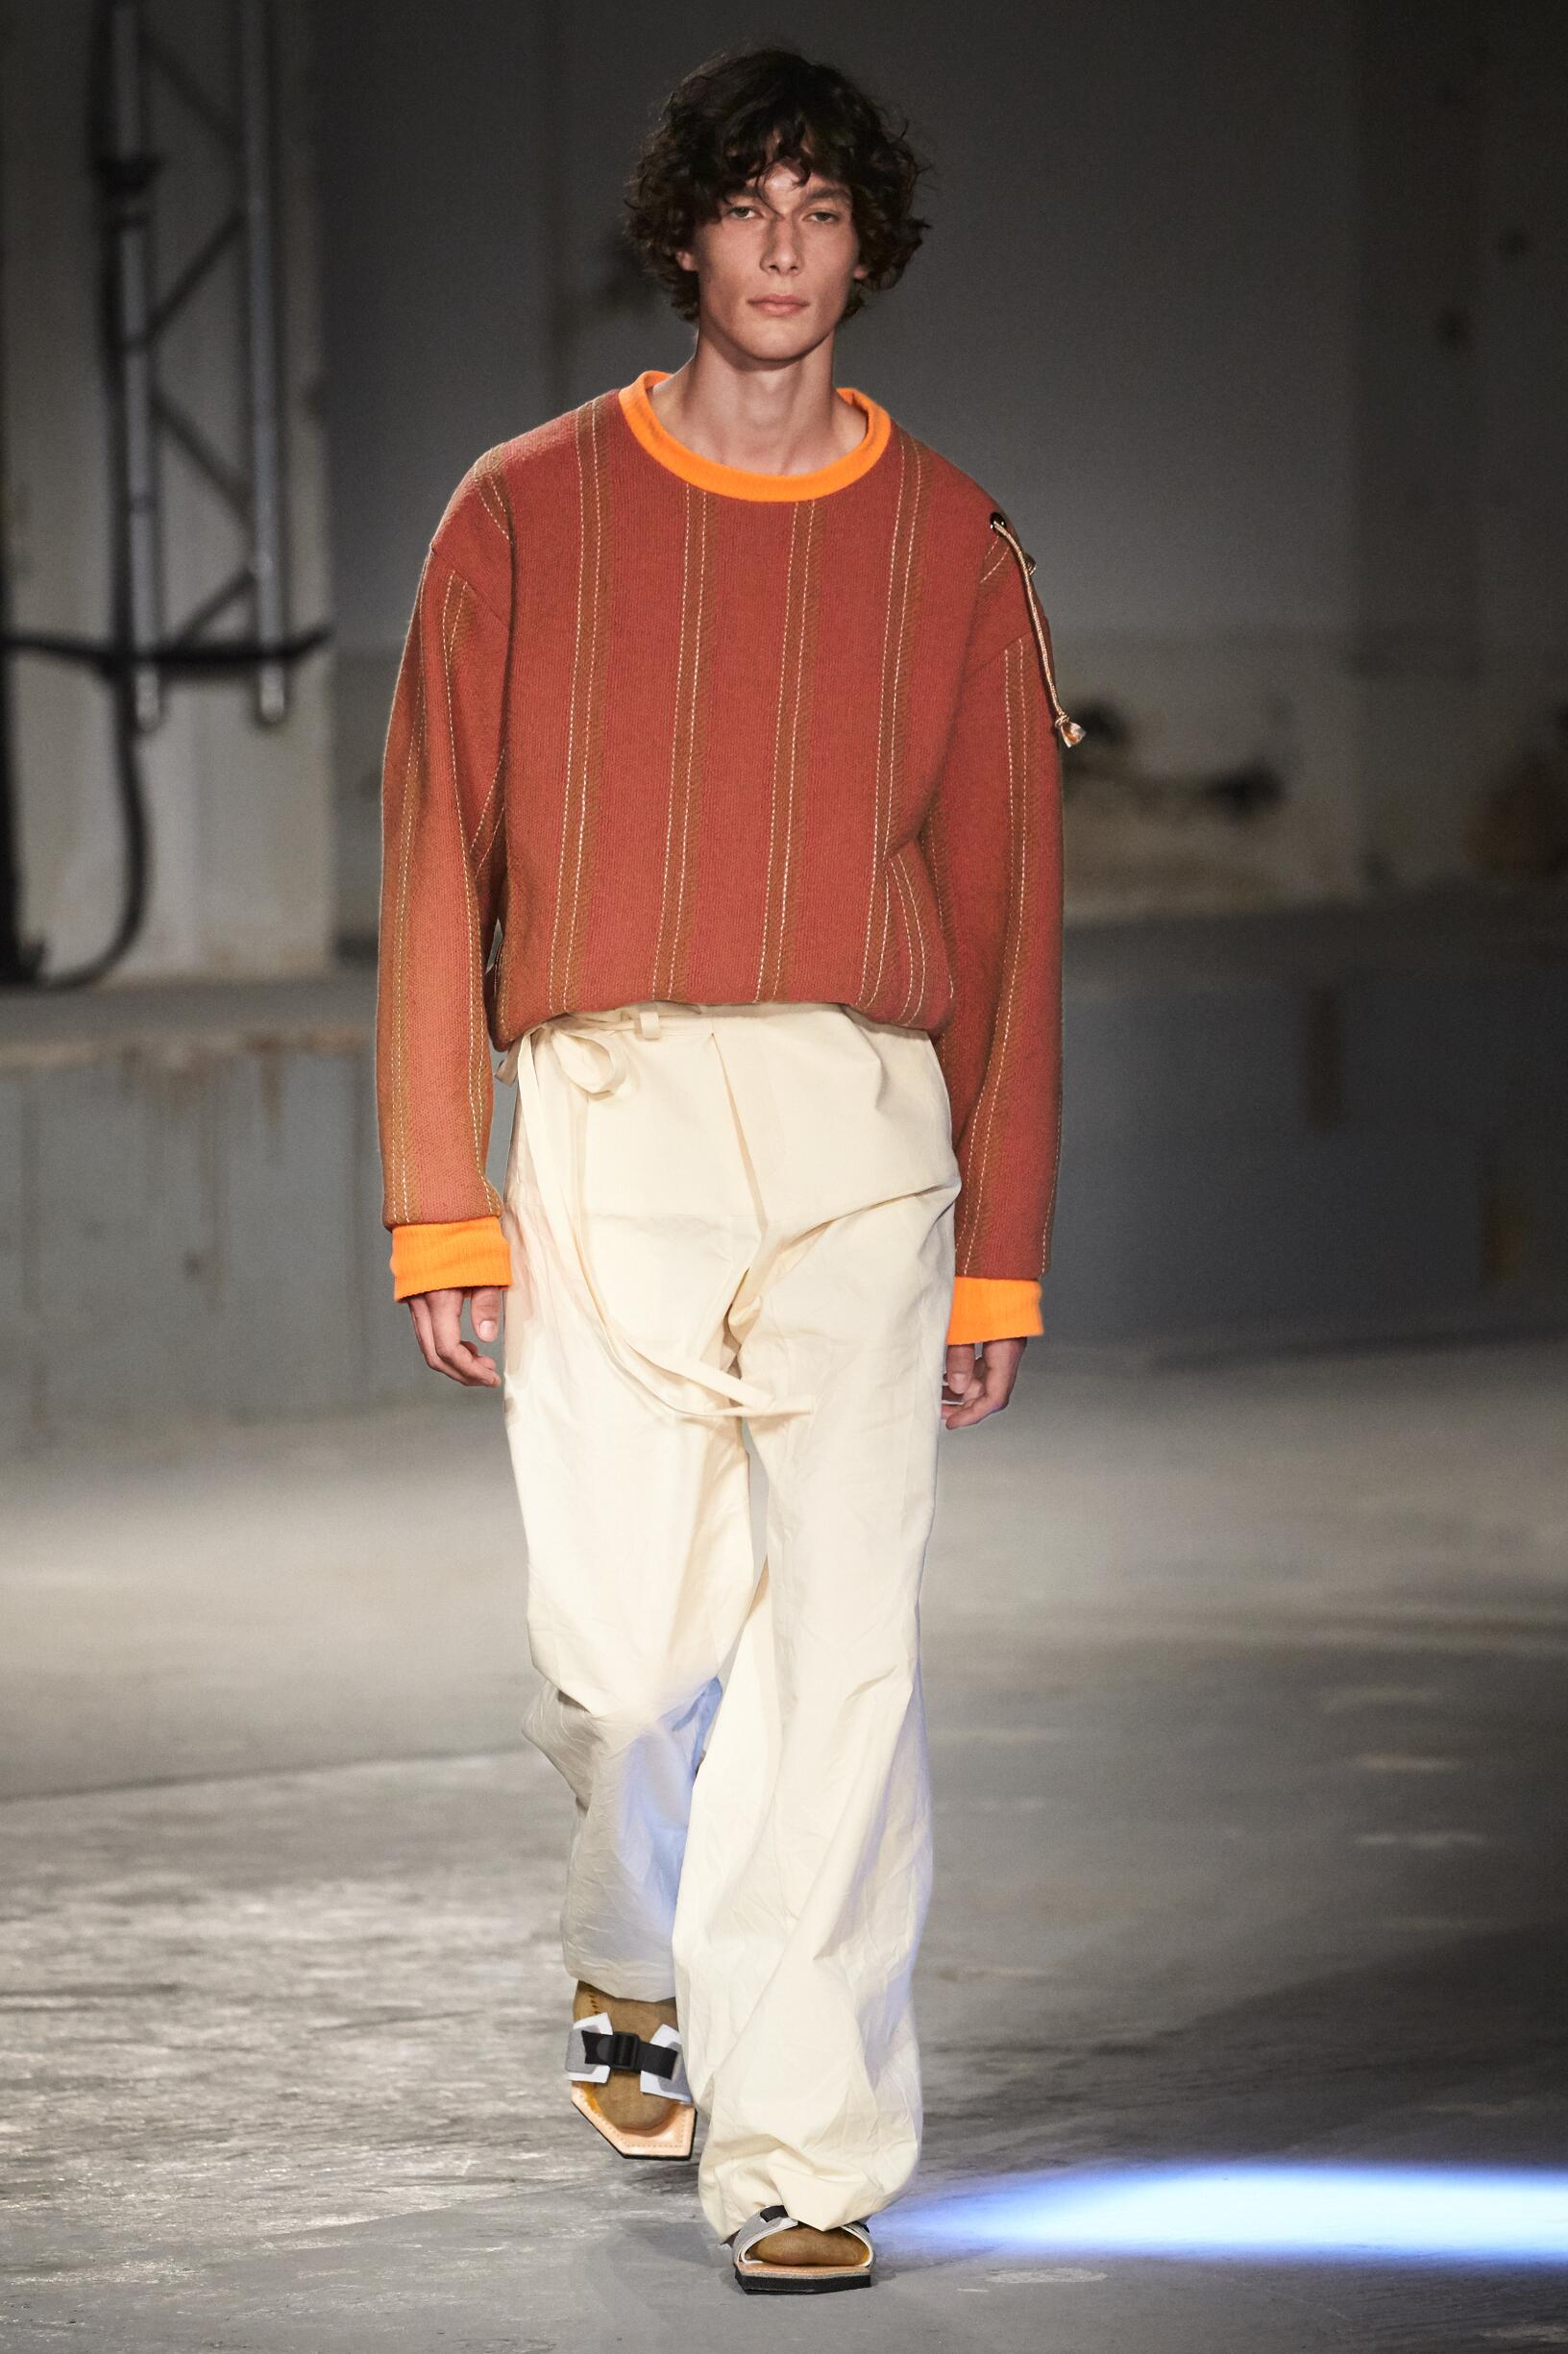 Catwalk Acne Studios Man Fashion Show Summer 2019